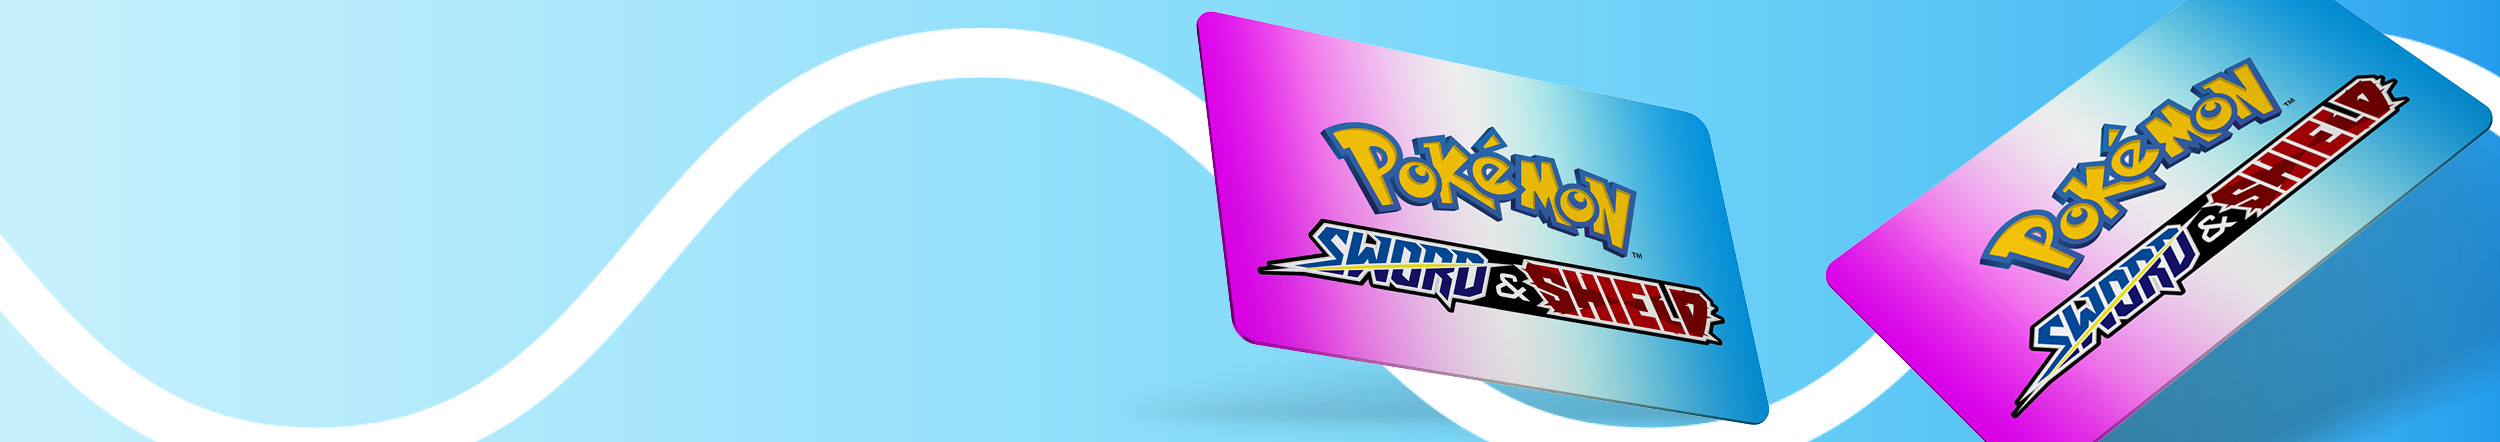 Pokemon Sword & Shield Expansion Pass Top up